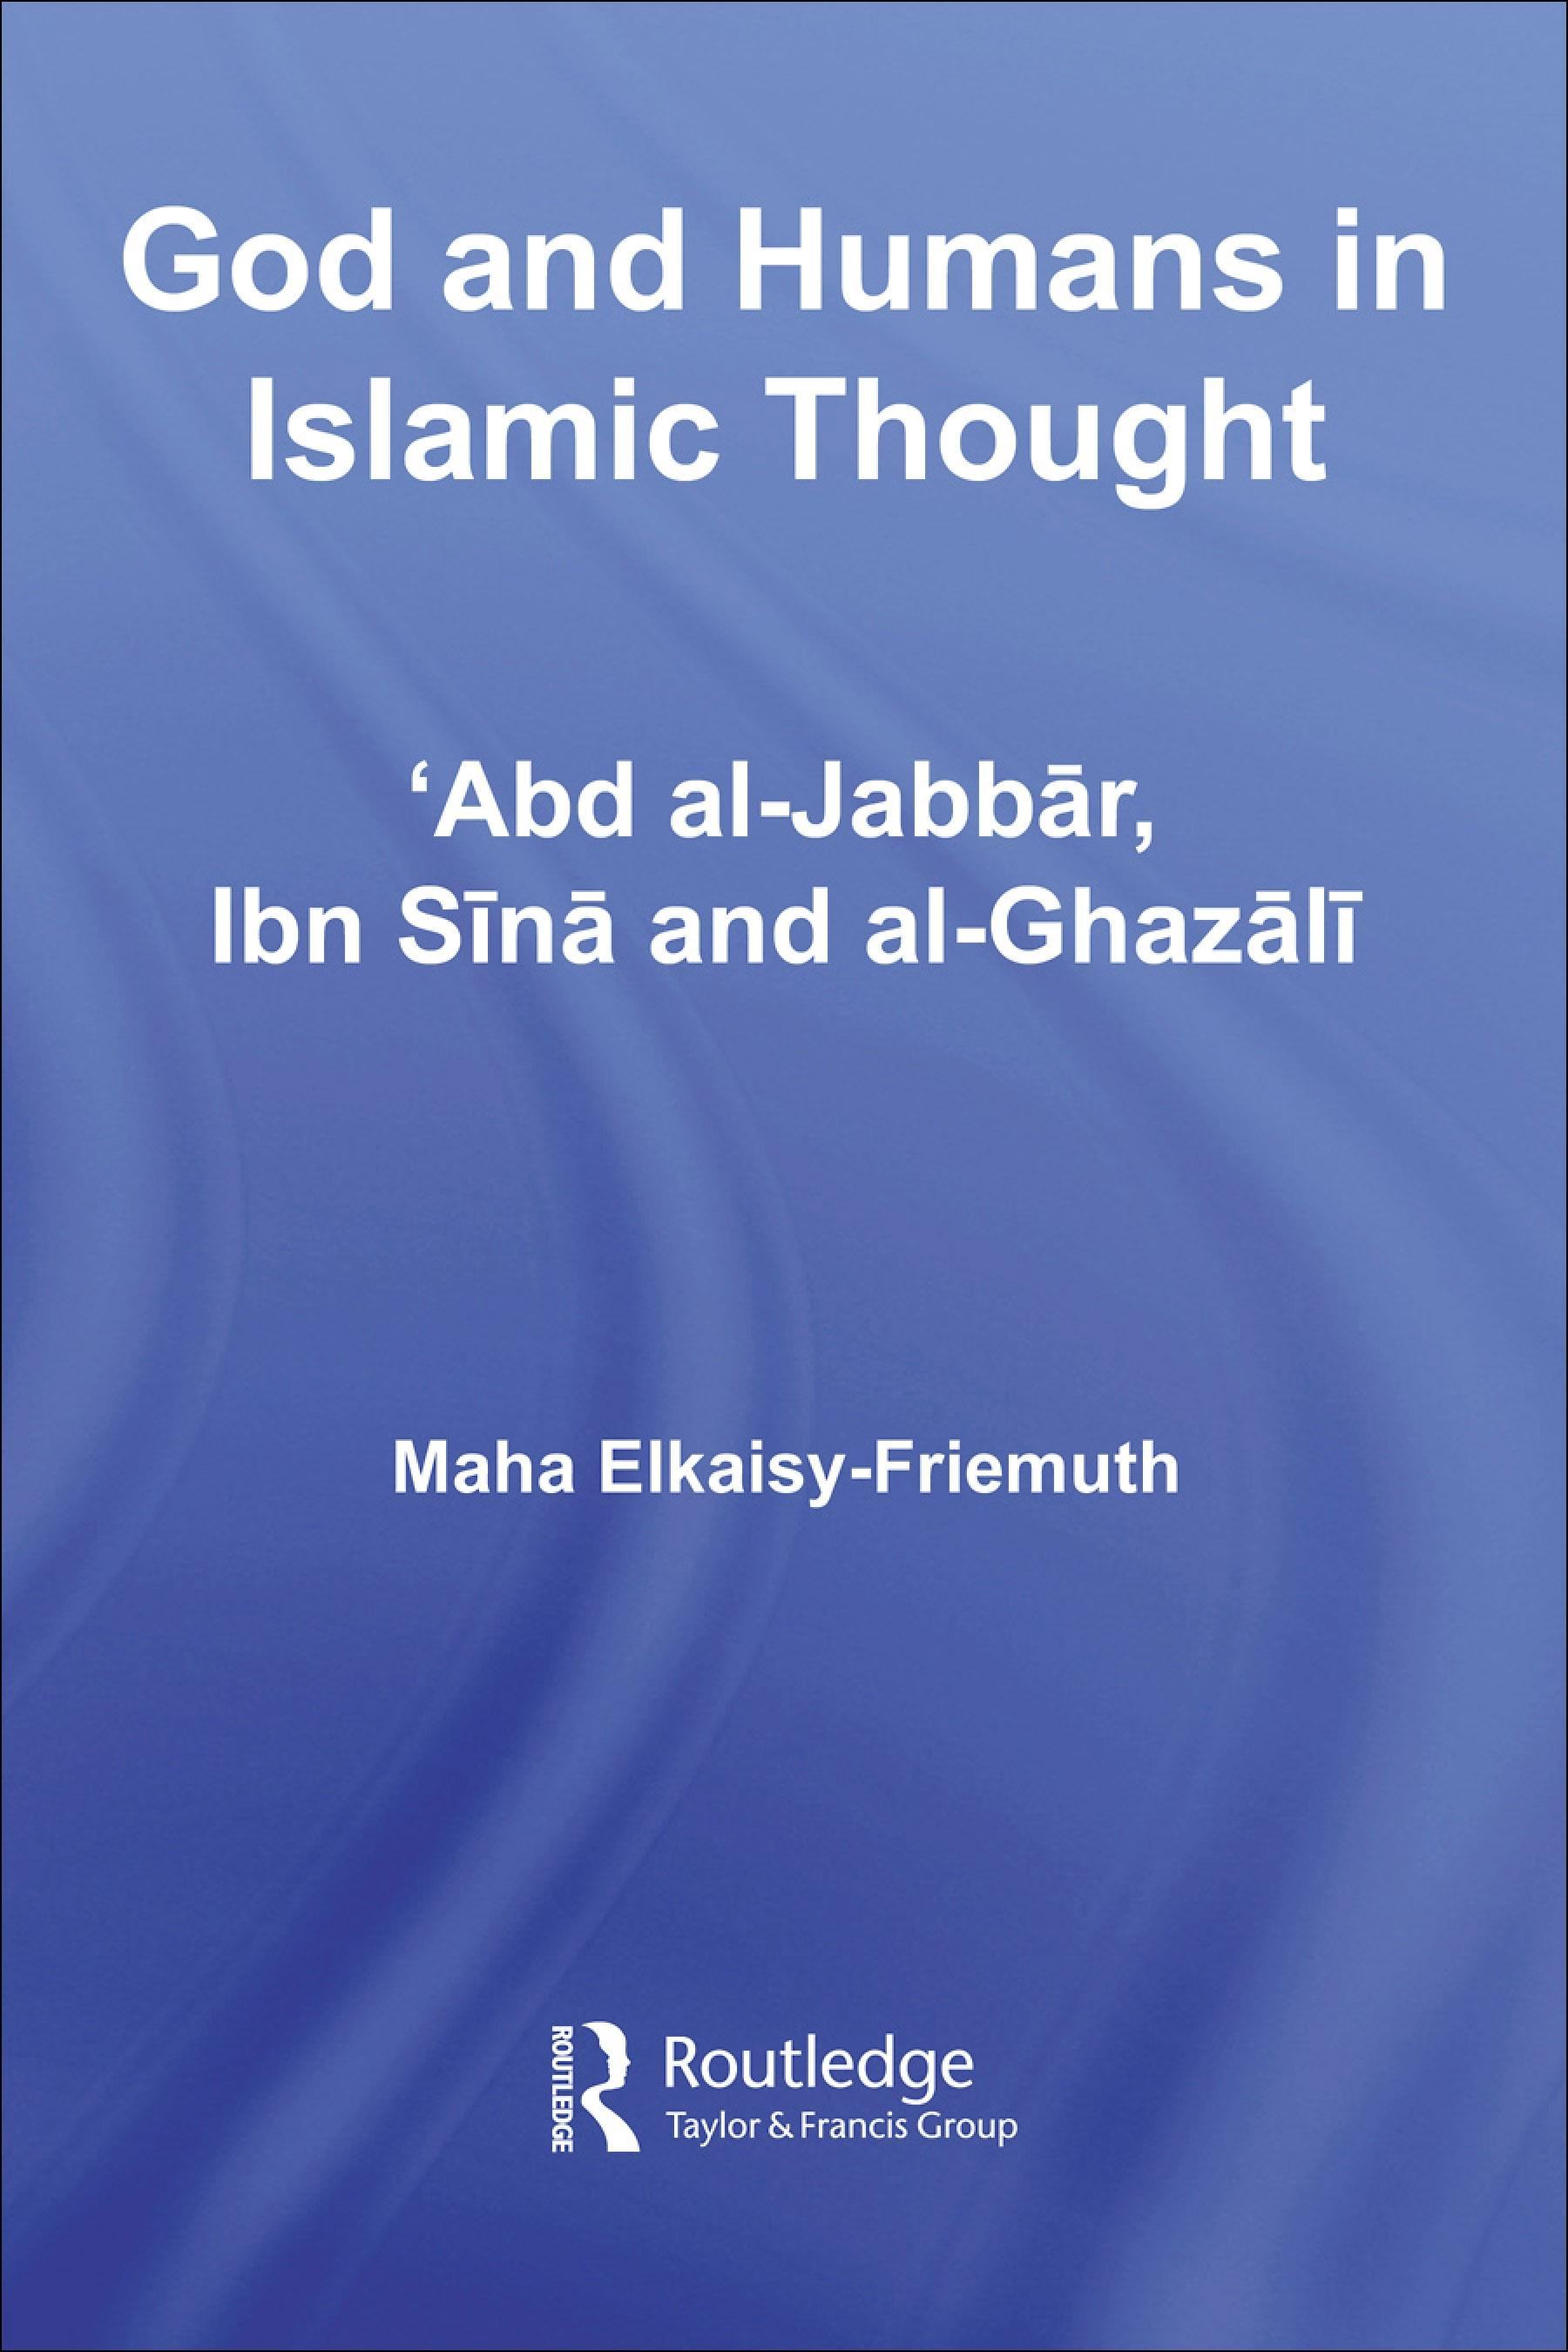 God and Humans in Islamic Thought: Abd Al-Jabbar, Ibn Sina and Al-Ghazali EB9780203965375